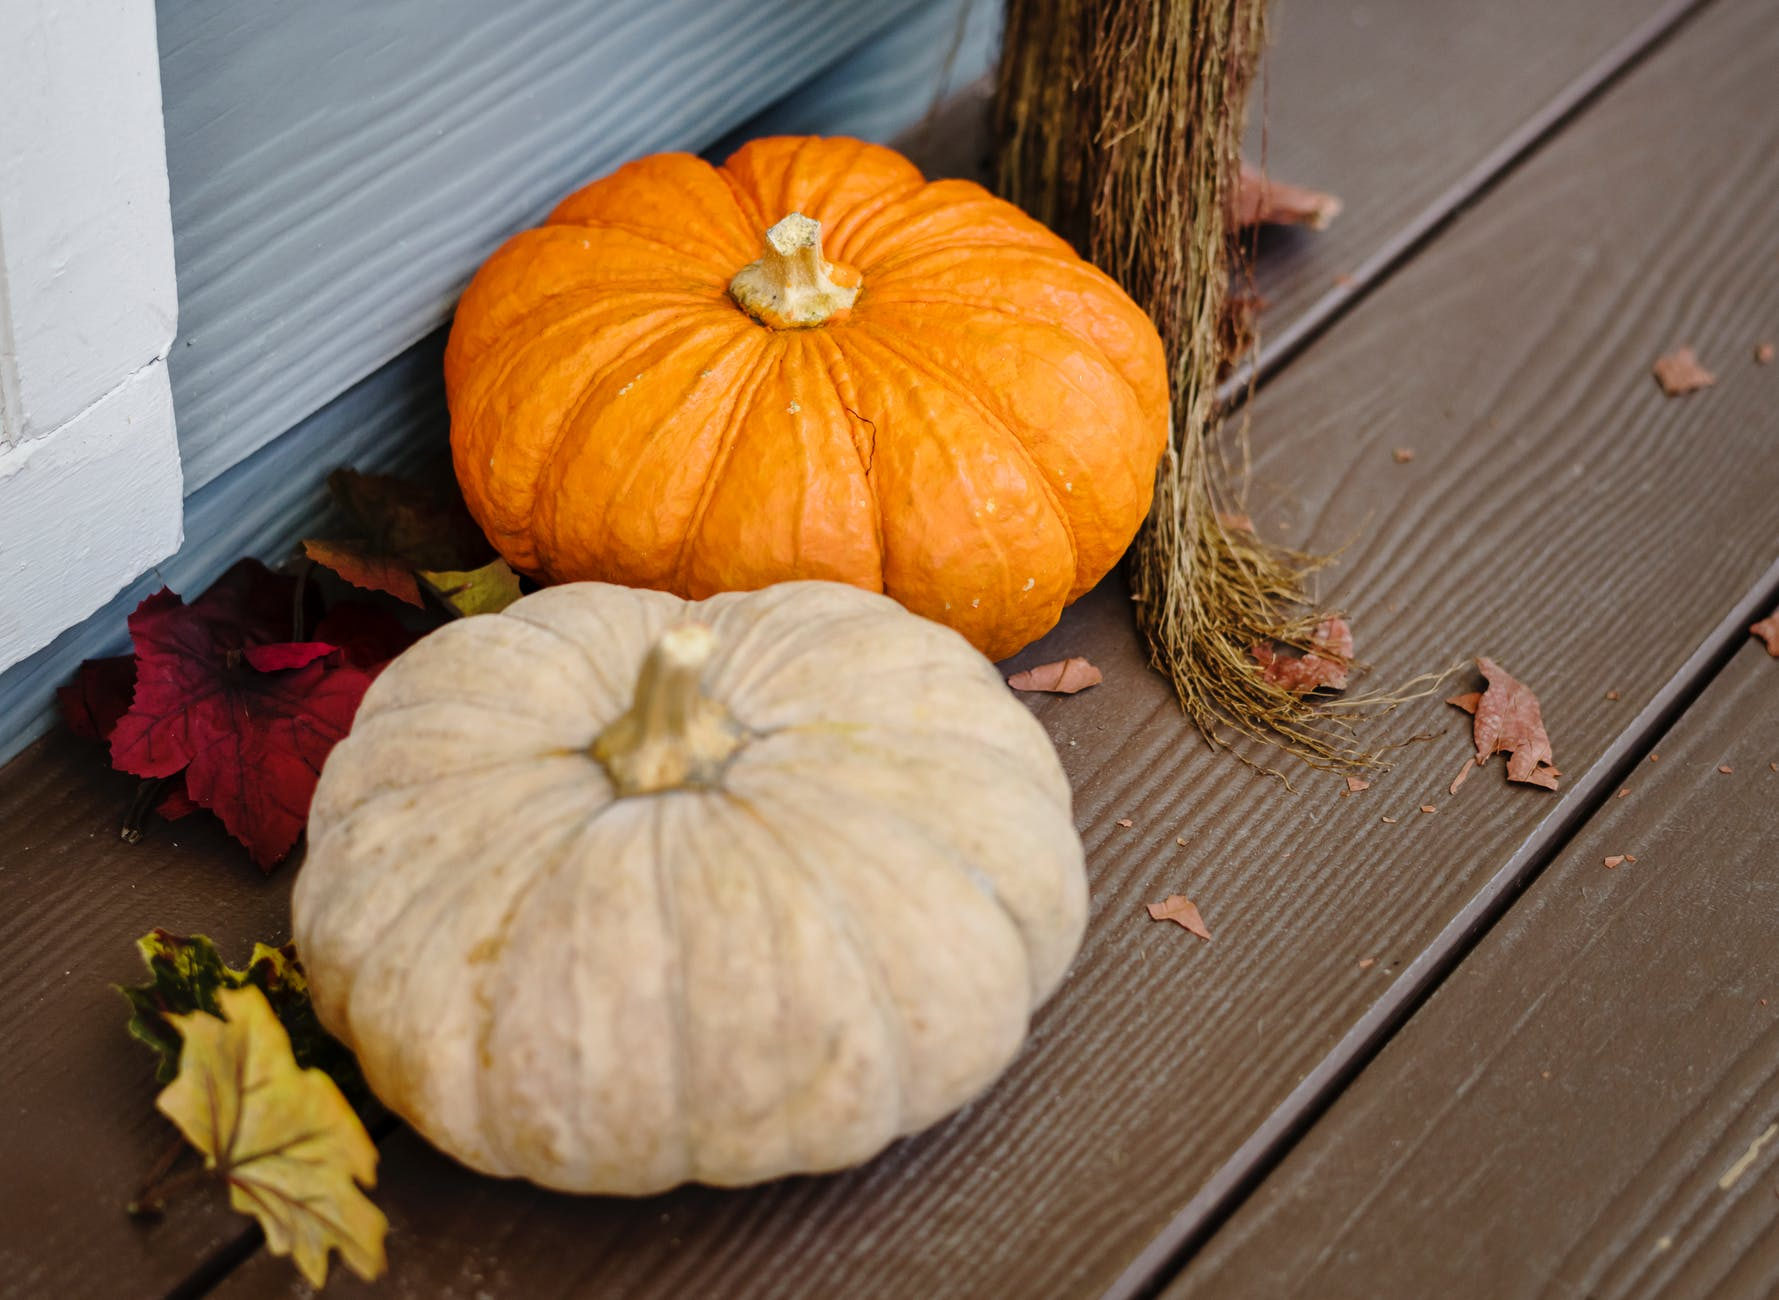 two pumpkins on wooden floor